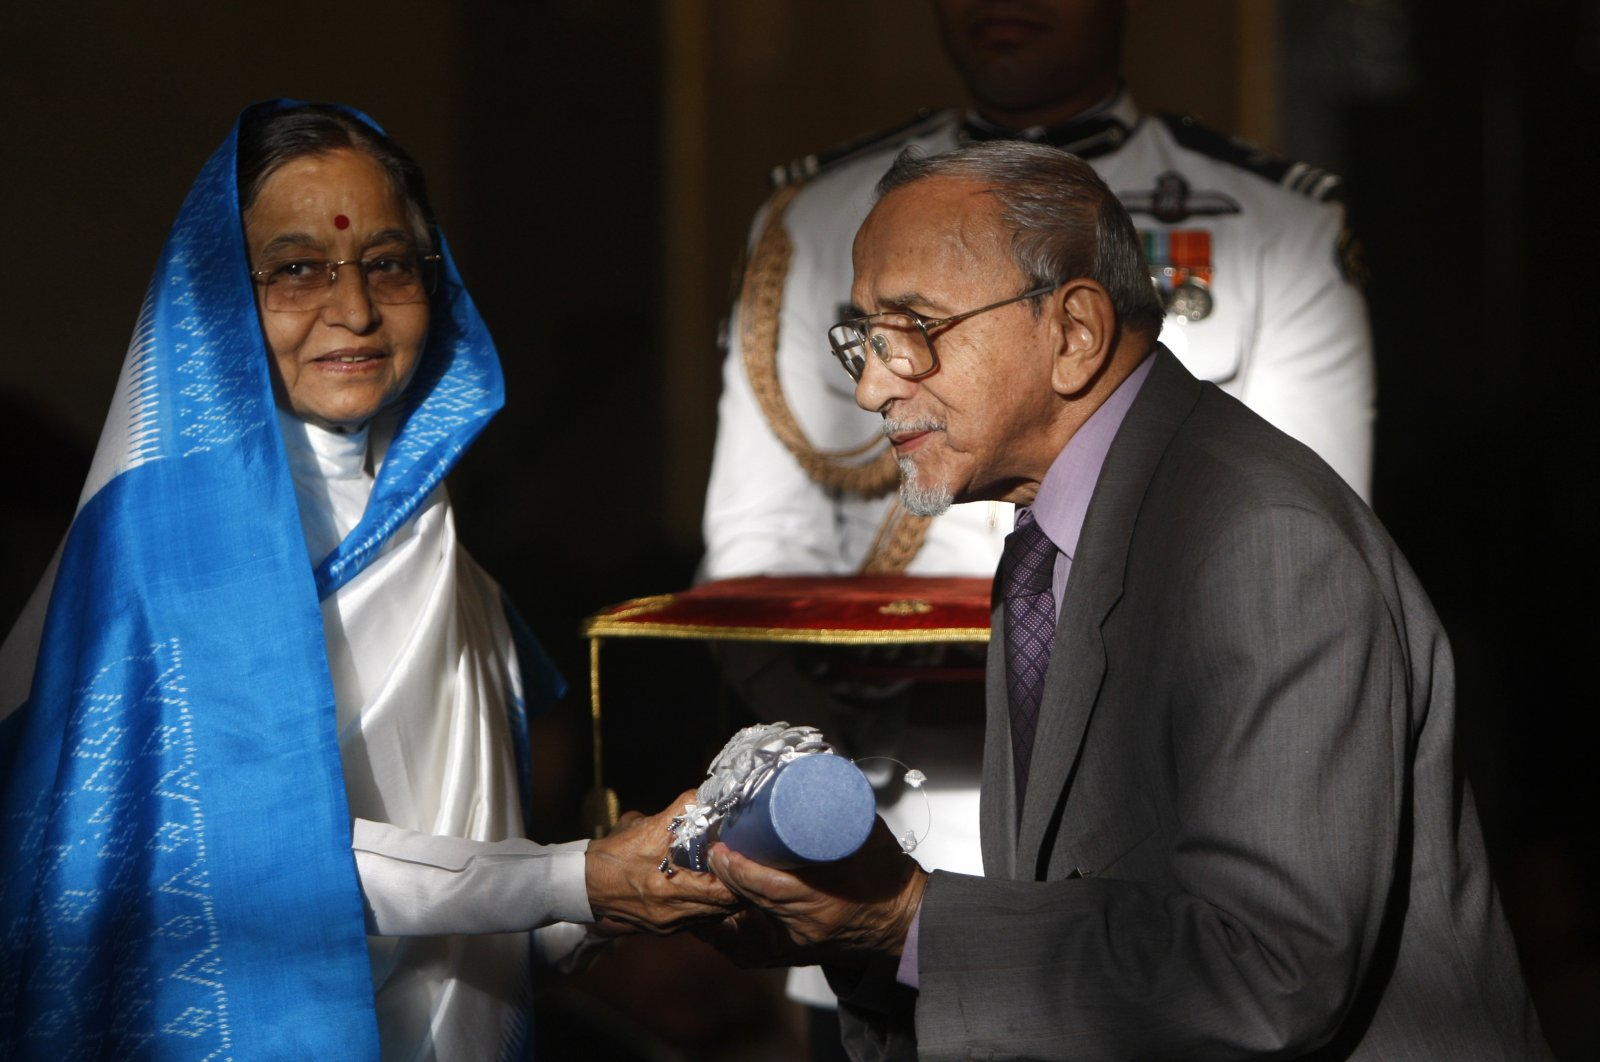 Pratibha Patil (L), the Indian president at the time, presents the Padma Vibhushan, one of India's highest civilian awards, to theater director Ebrahim Alkazi at the Presidential Palace in New Delhi, India, March 31, 2010. (AP Photo)